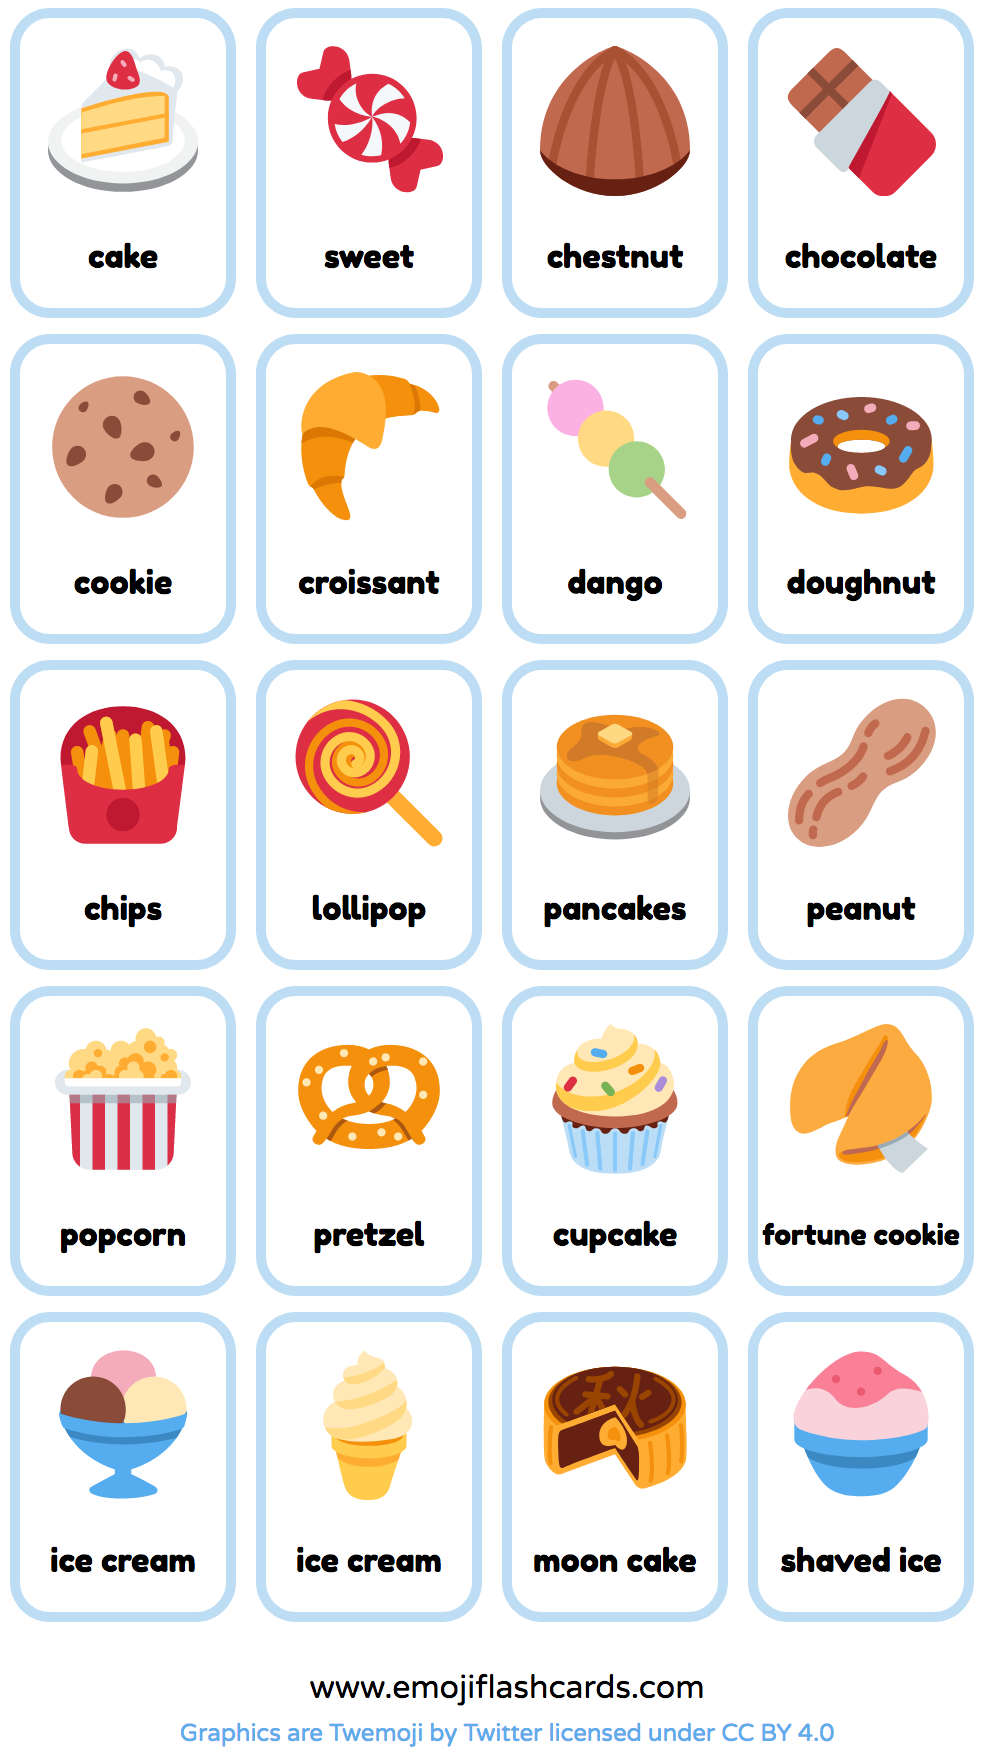 Free Snacks and Deserts English Printable Flashcards - made from emoji.